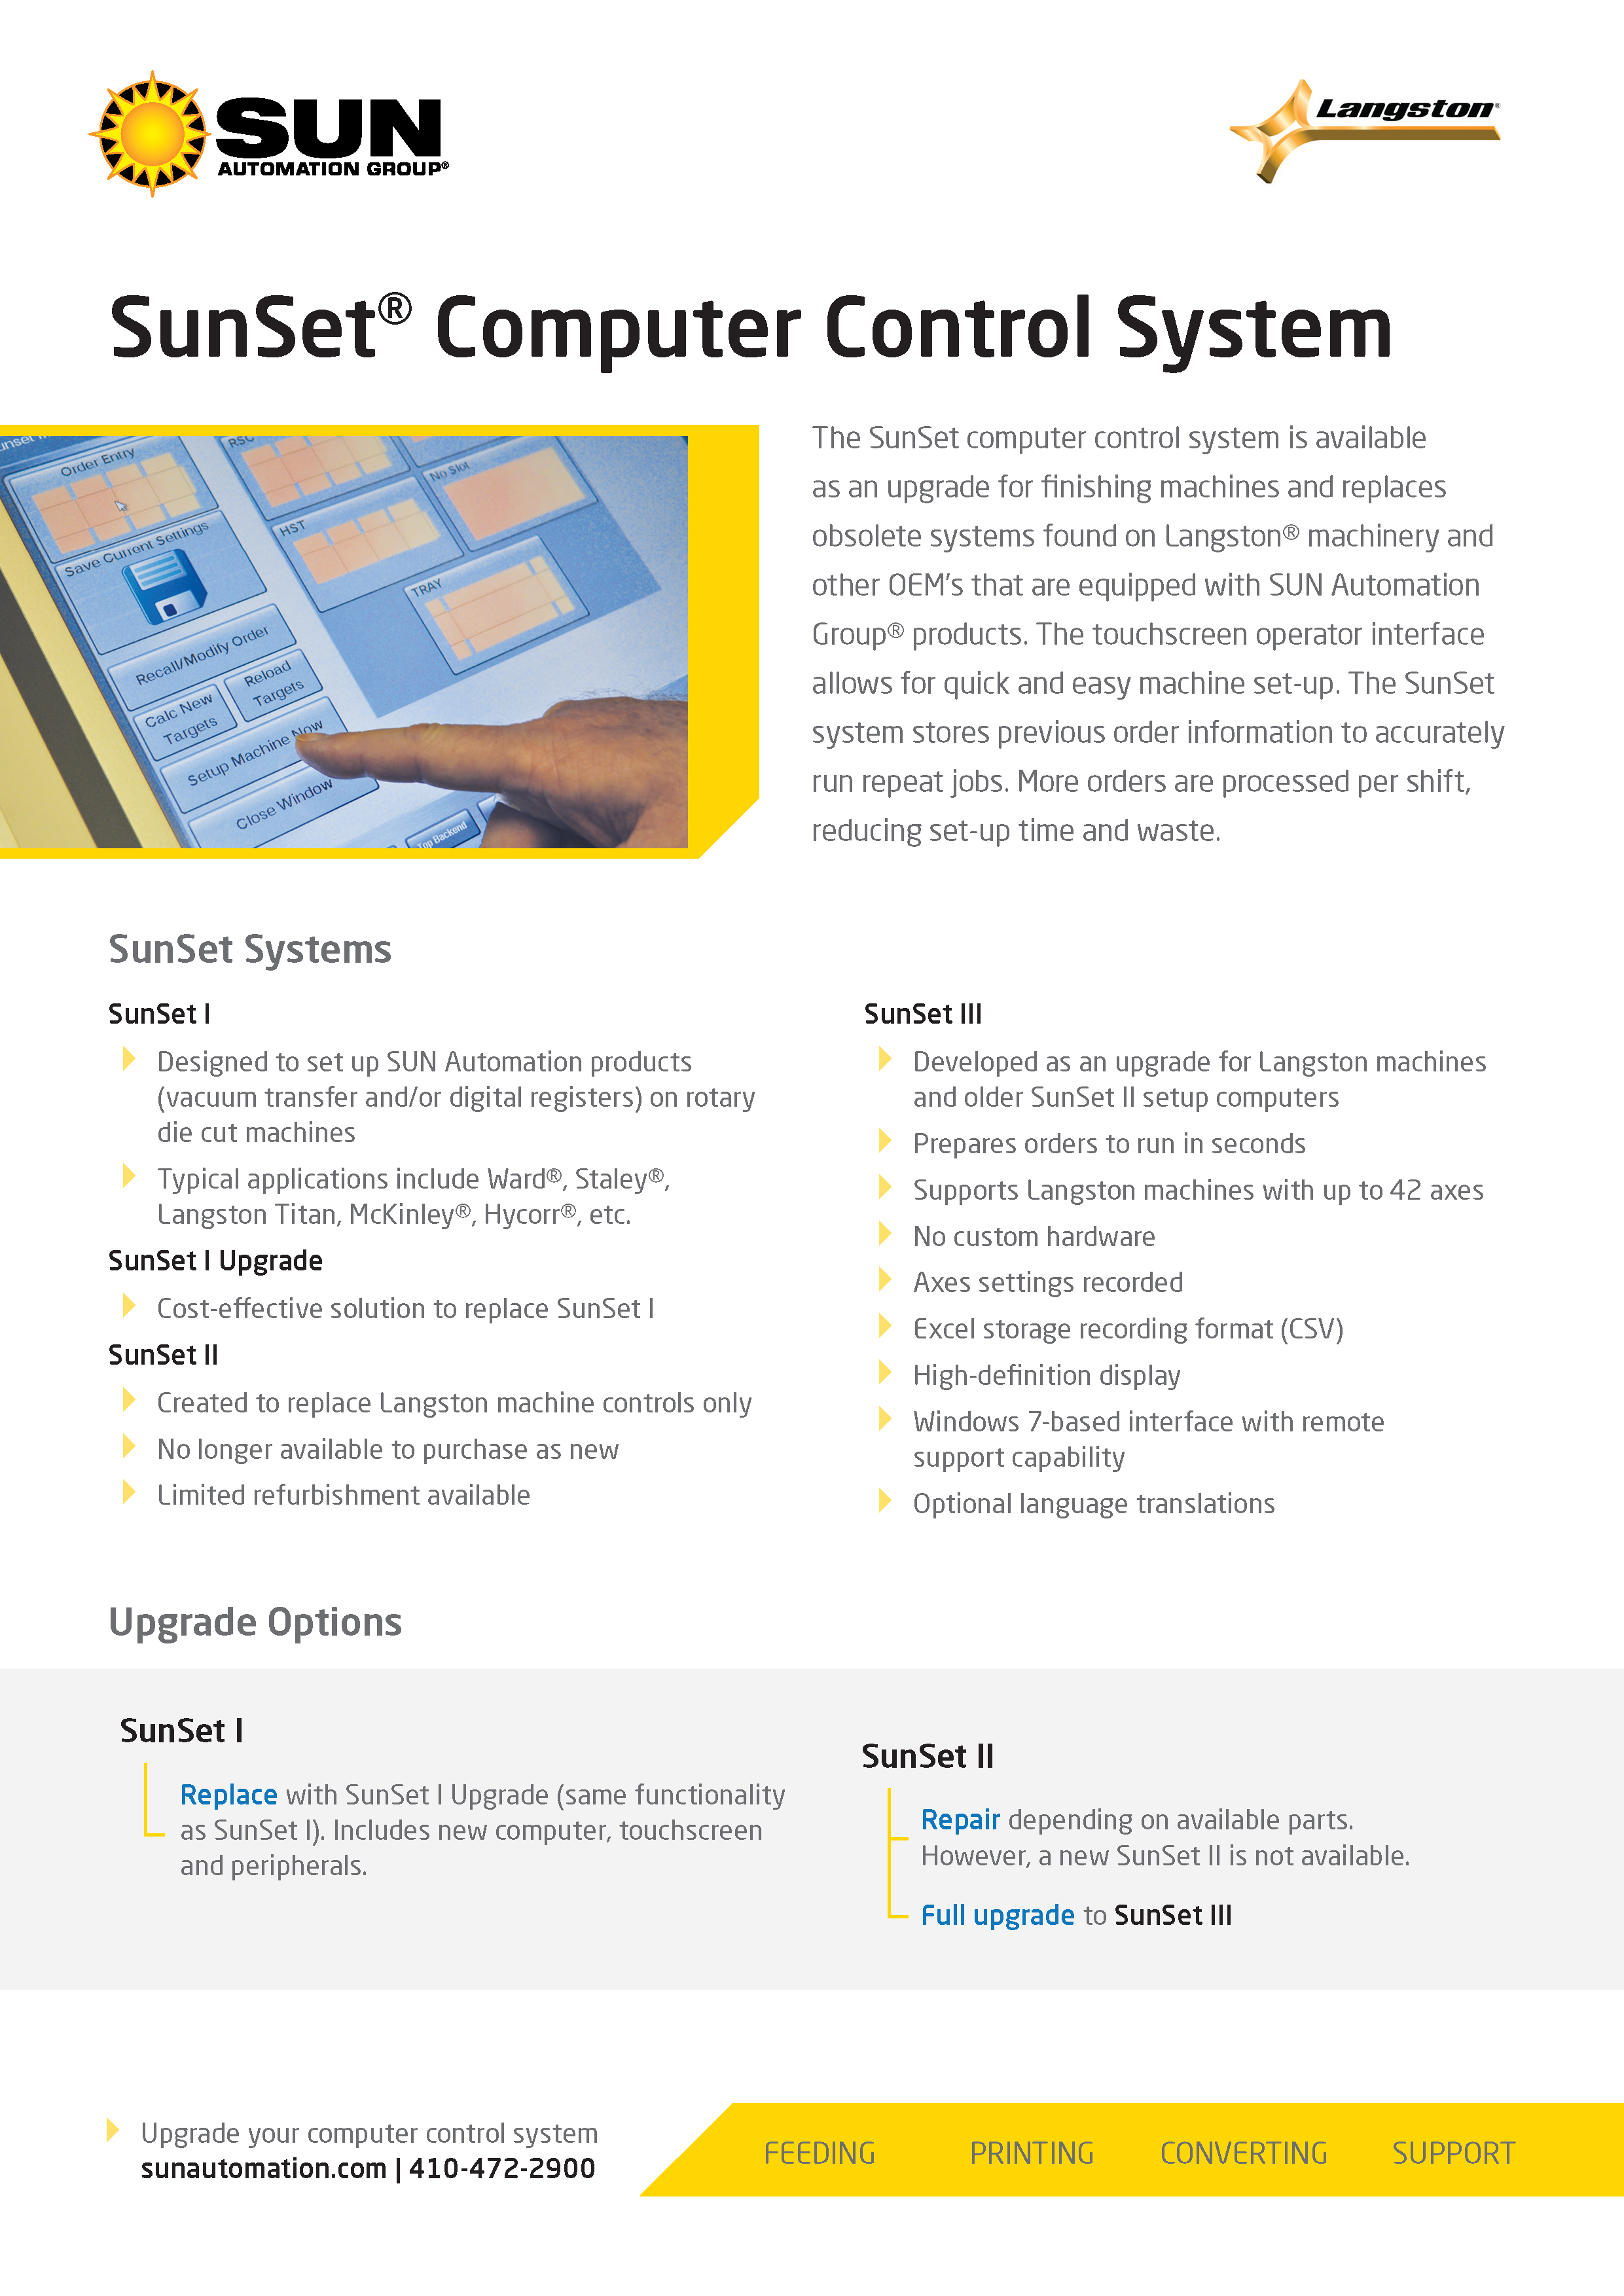 Learn more about Sun Automation Group's SunSet Computer Control System in their brochure.